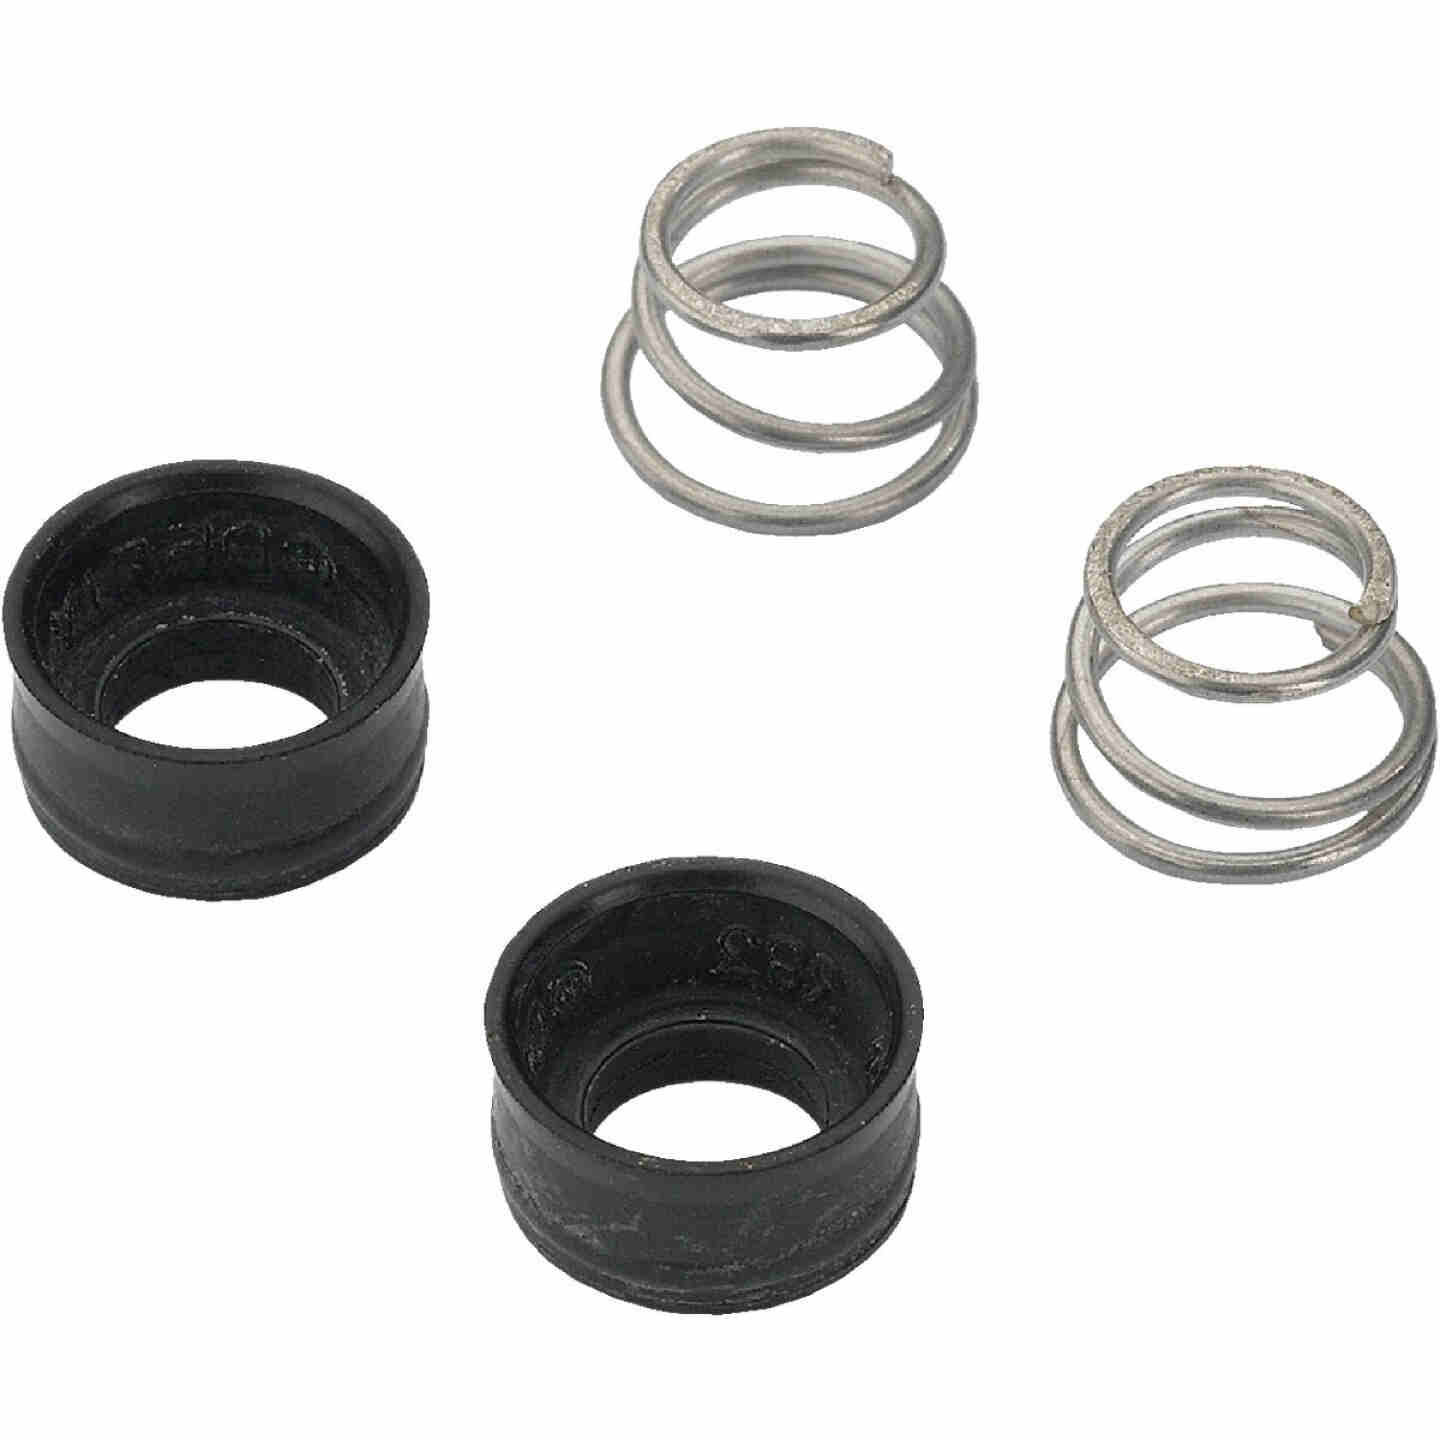 Delta Delta Metal, Rubber Faucet Repair Kit Image 1